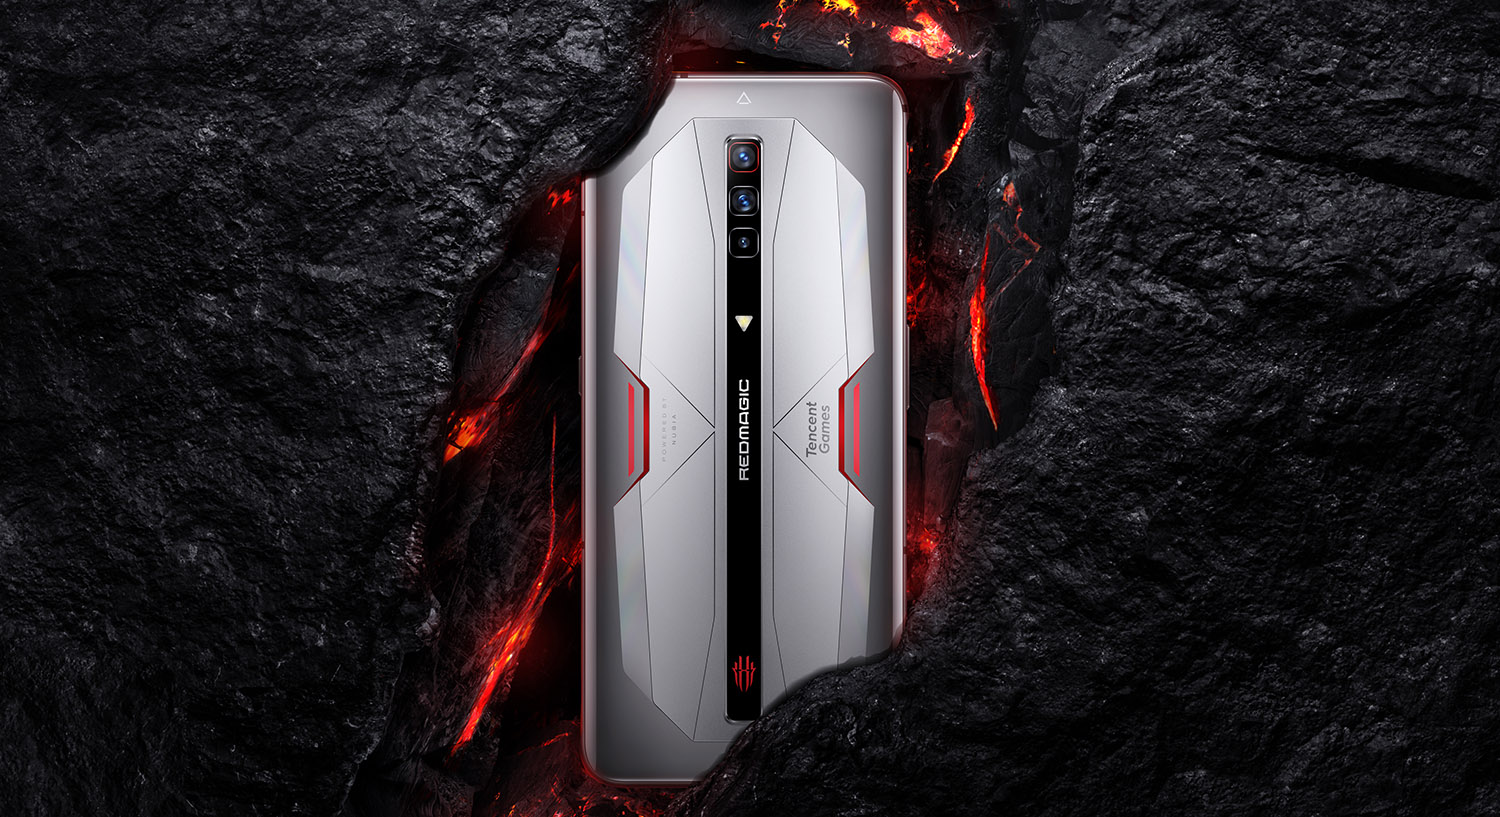 Nubia partners with Tencent to release two insane RedMagic 6 gaming smartphones